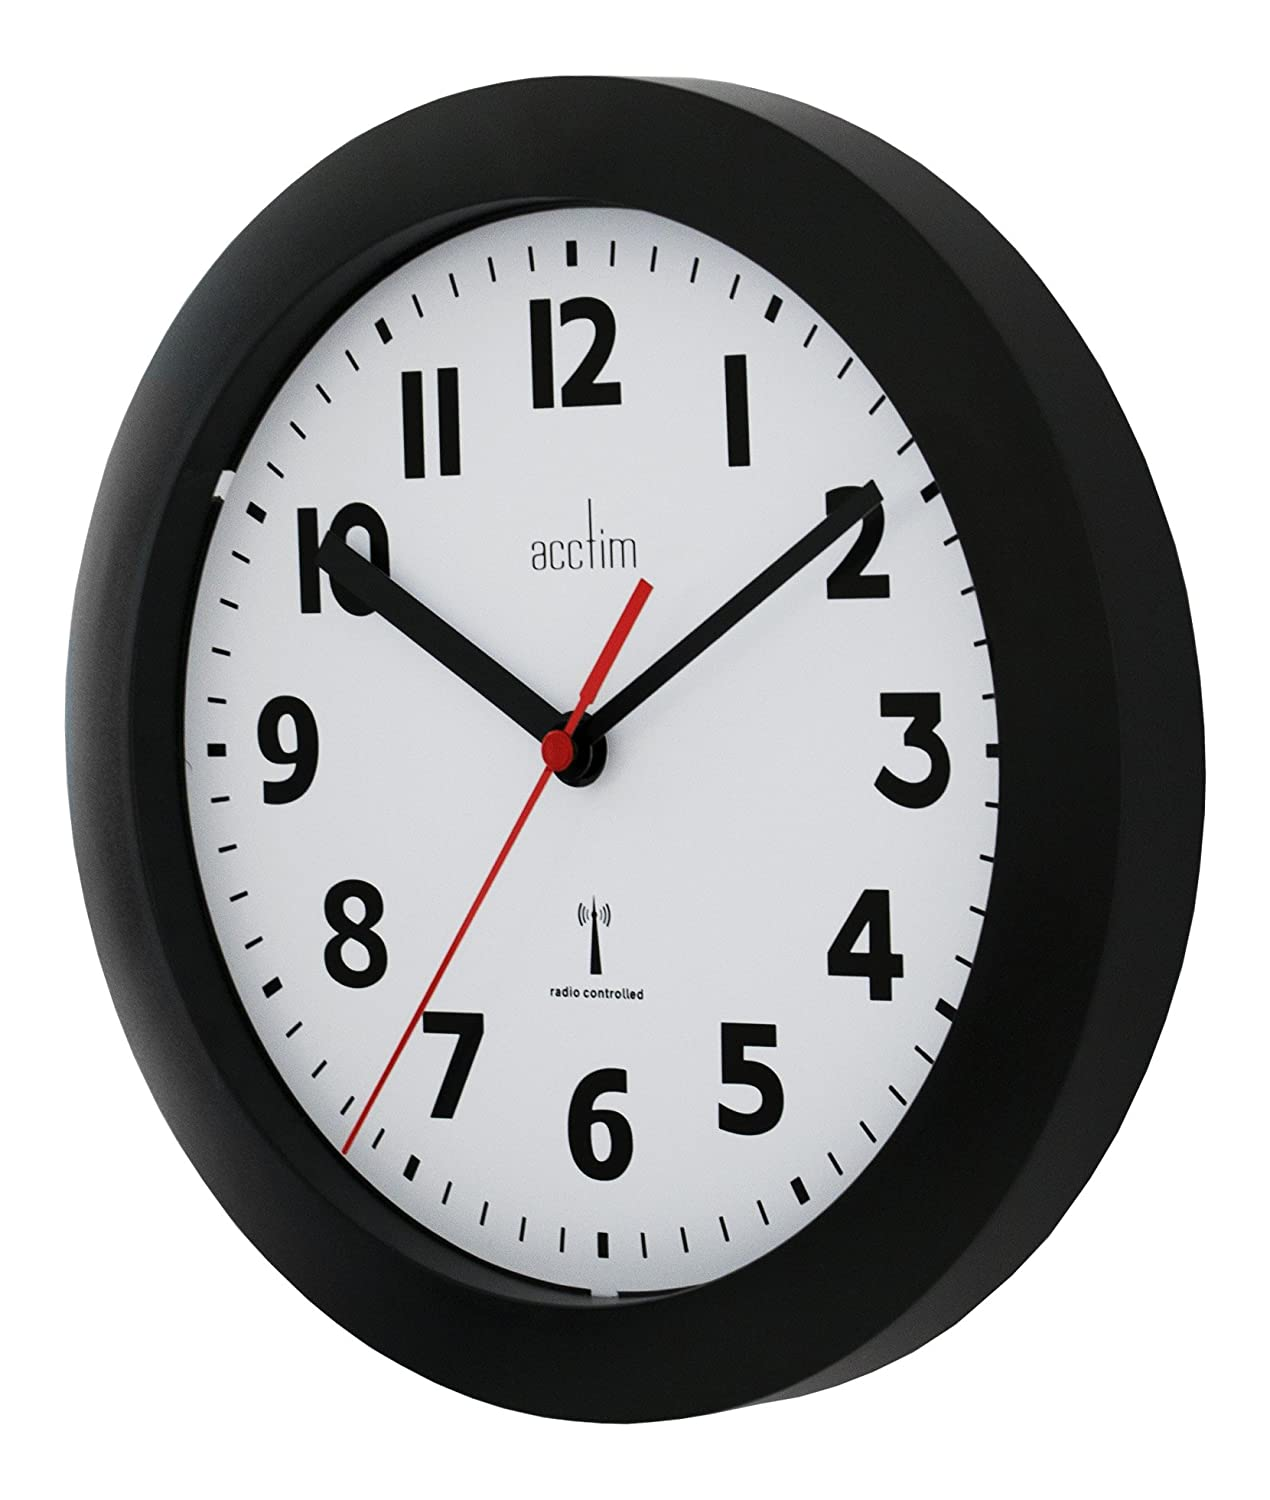 Acctim parona radio controlled wall clock acctim amazon acctim parona radio controlled wall clock acctim amazon kitchen home amipublicfo Image collections